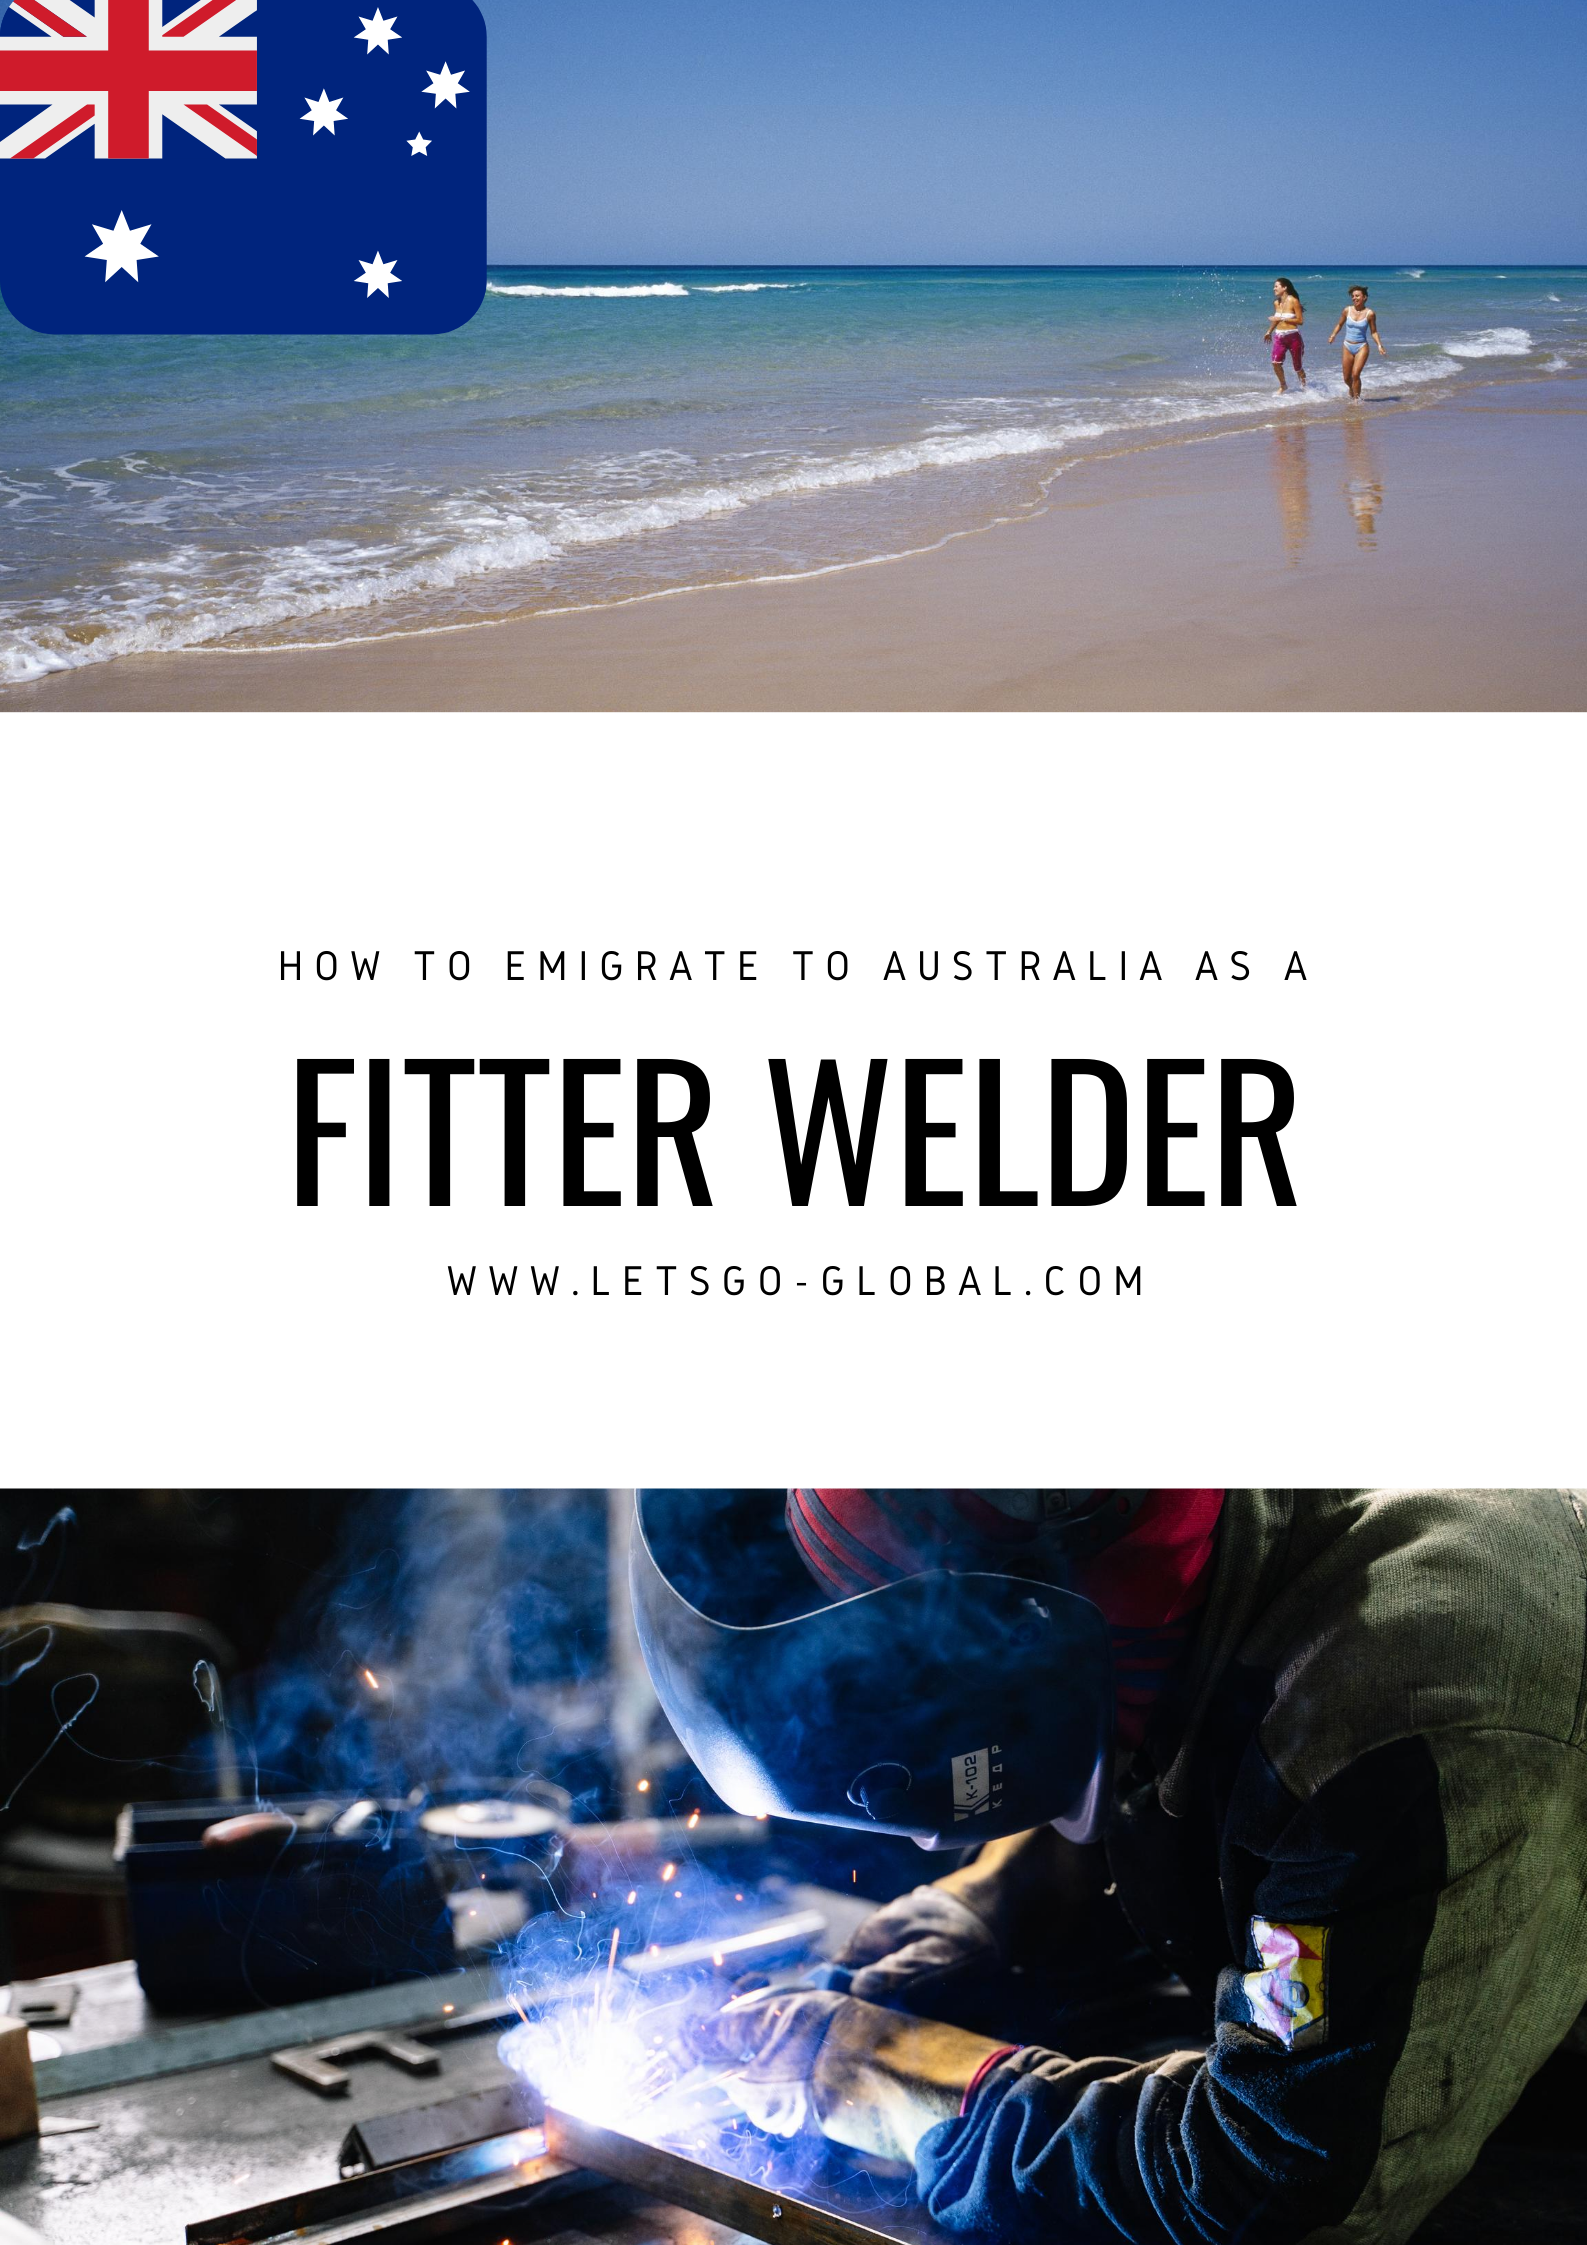 Migrate to Australia as a fitter welder